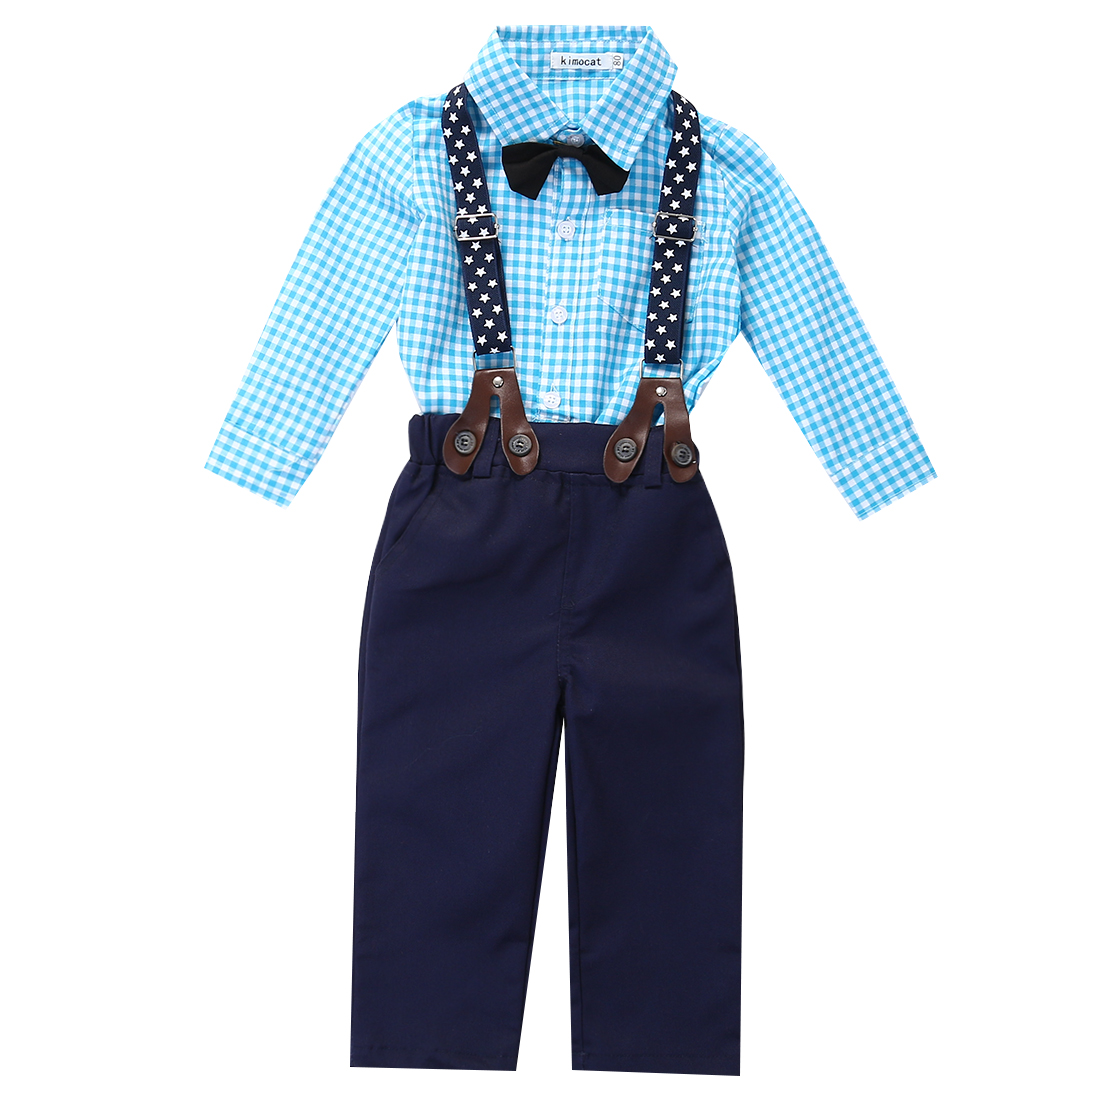 Newborn Infant Baby Boy shirt Top+Overalls Clothes Sets Long sleeve Blue Plaids Shirts Suit+Braces Pants Outfit Boy Clothing Set free shipping baby clothing set boy spring fall set boy leisure suit long sleeve t shirt pants 100